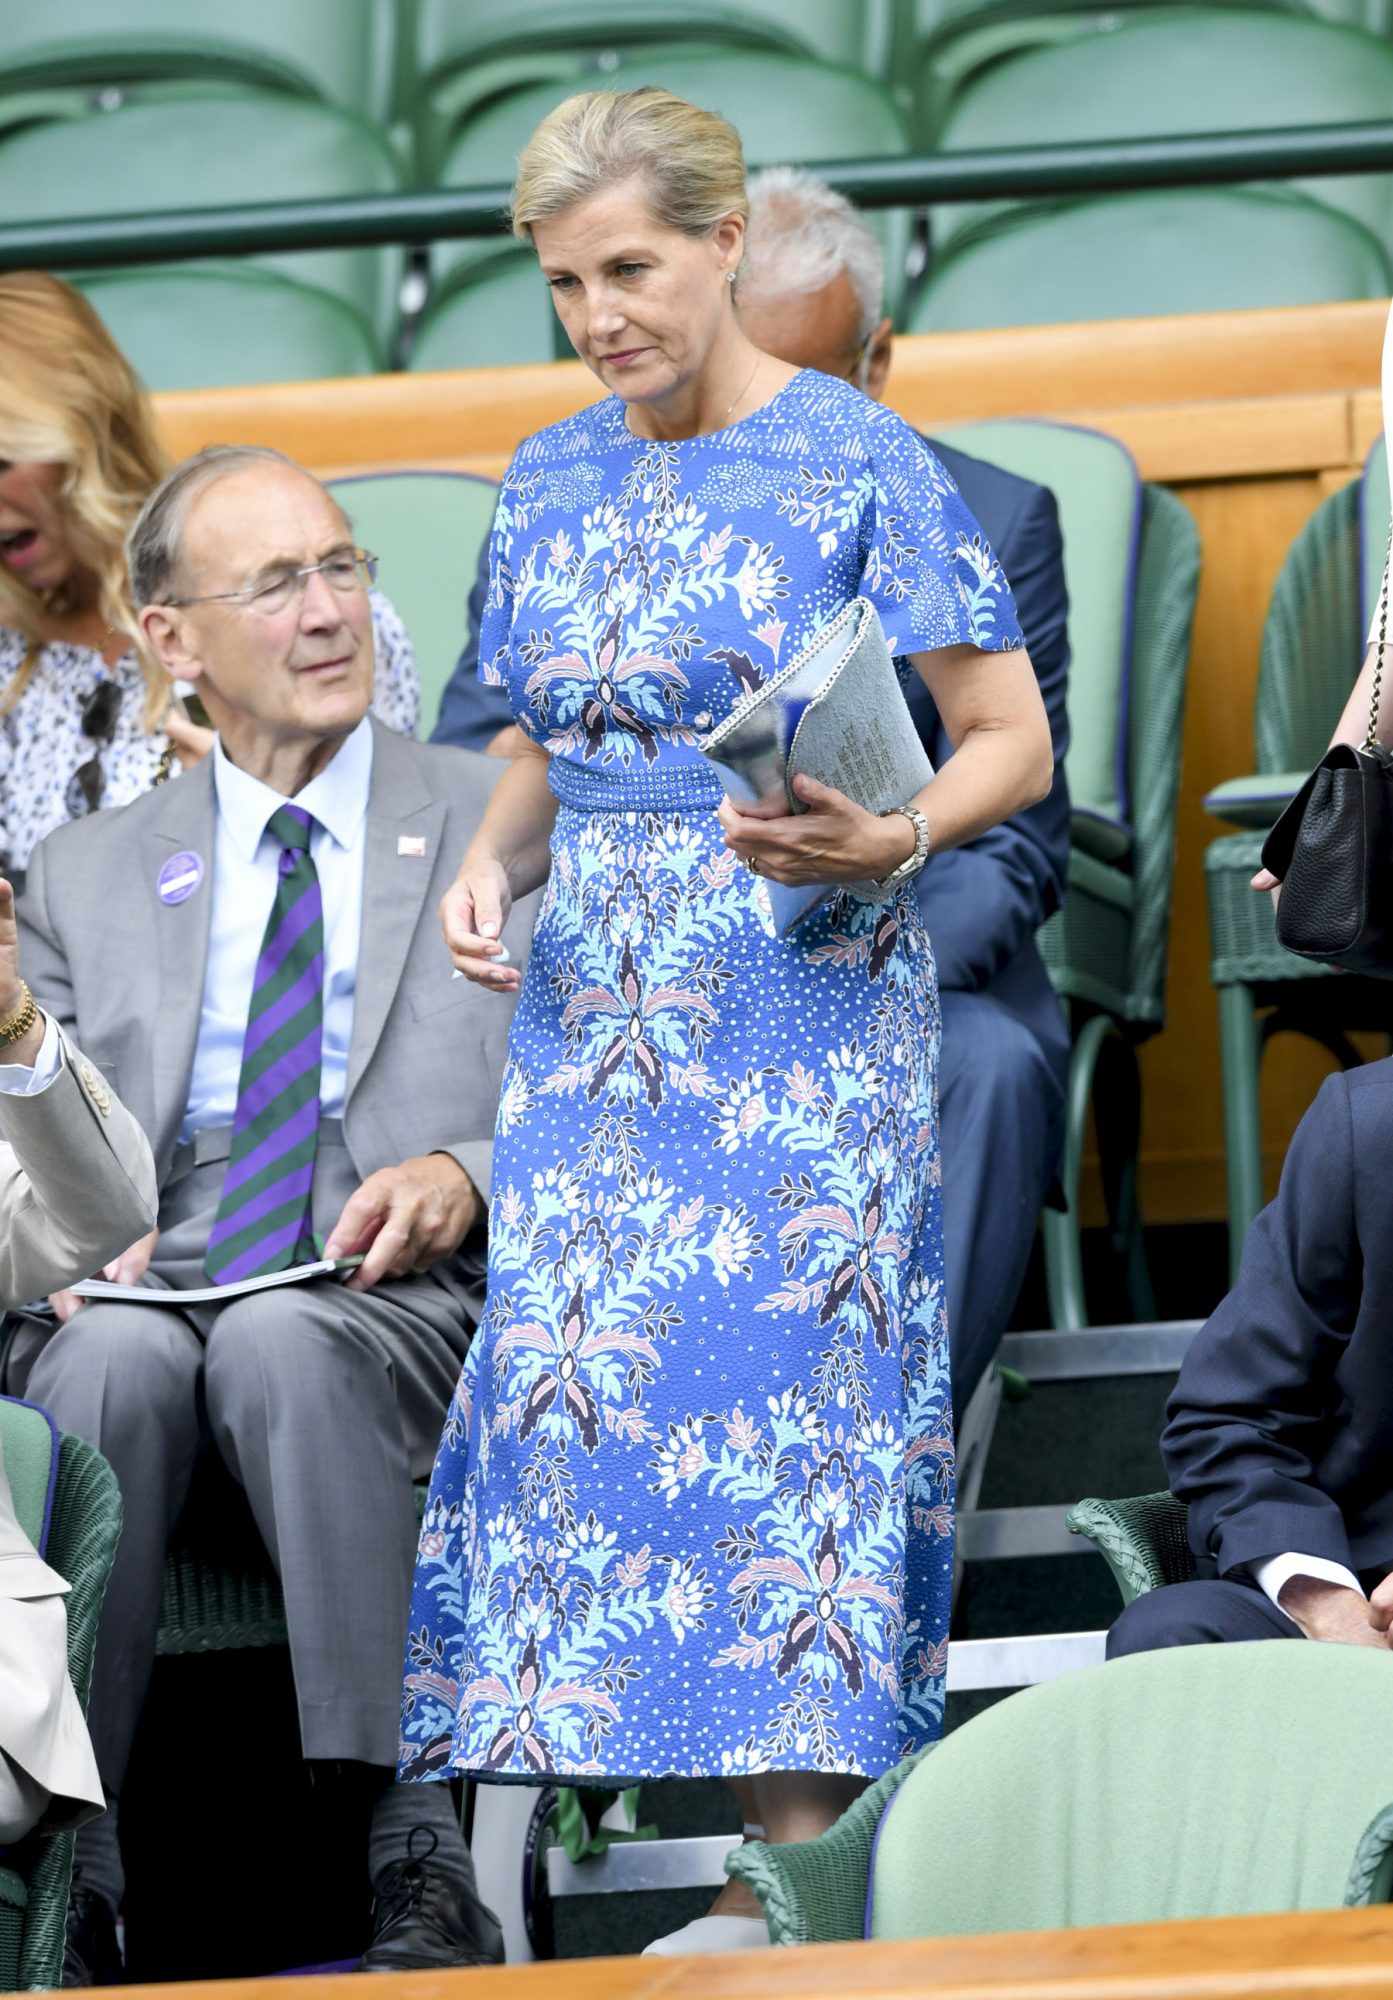 LONDON, ENGLAND - JULY 10: Sophie, Countess of Wessex attends day nine of the Wimbledon Tennis Championships at All England Lawn Tennis and Croquet Club on July 10, 2019 in London, England. (Photo by Karwai Tang/Getty Images)